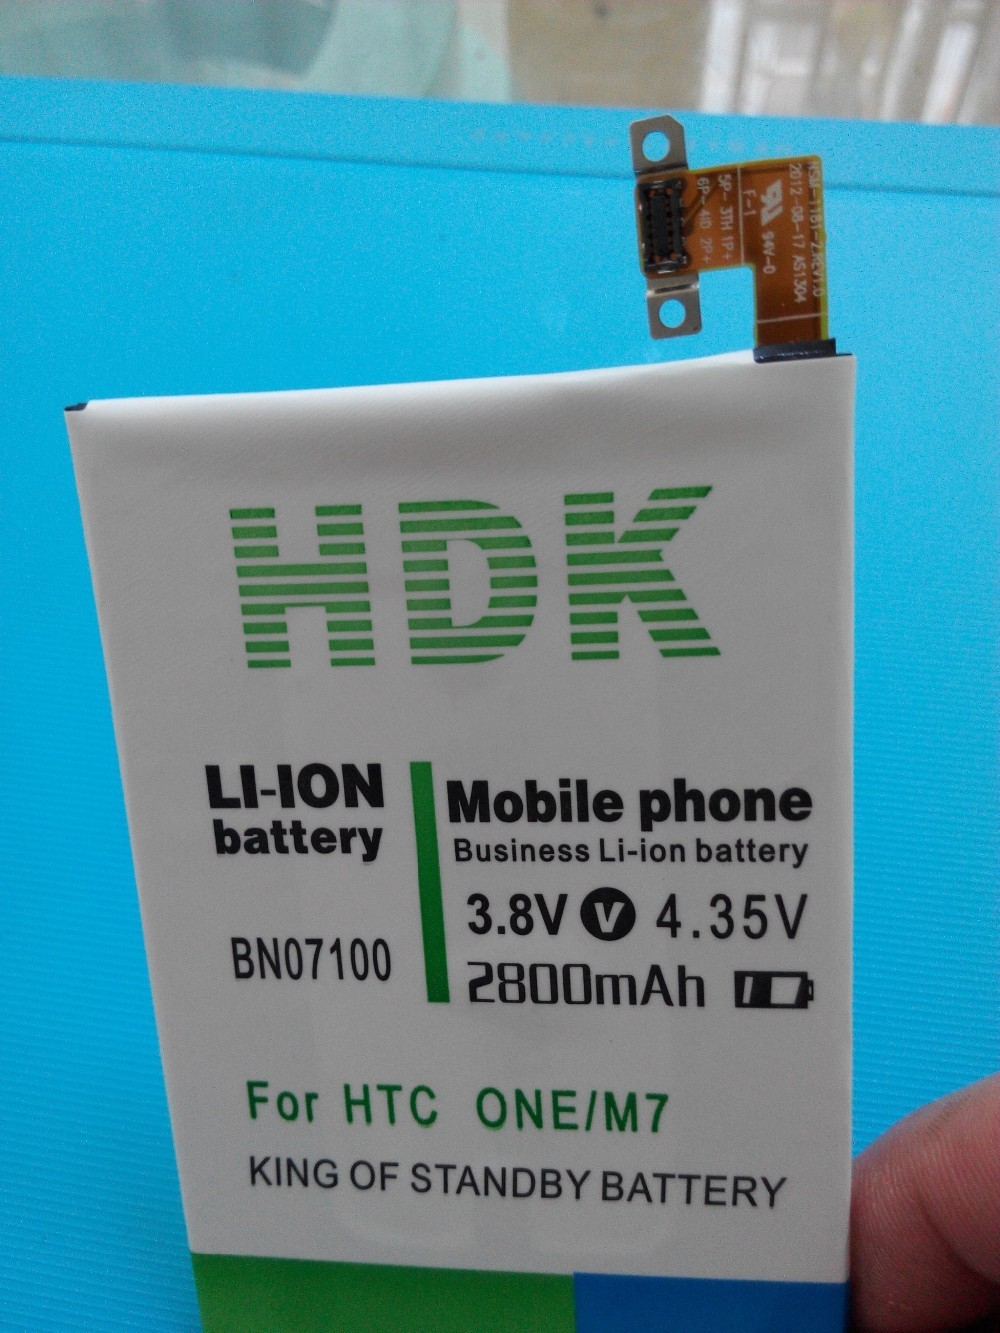 New Replacement Battery 2800mAh BN07100 Phone Battery Use for HTC ONE M7 802D 802T 802W 801E 801S 801N